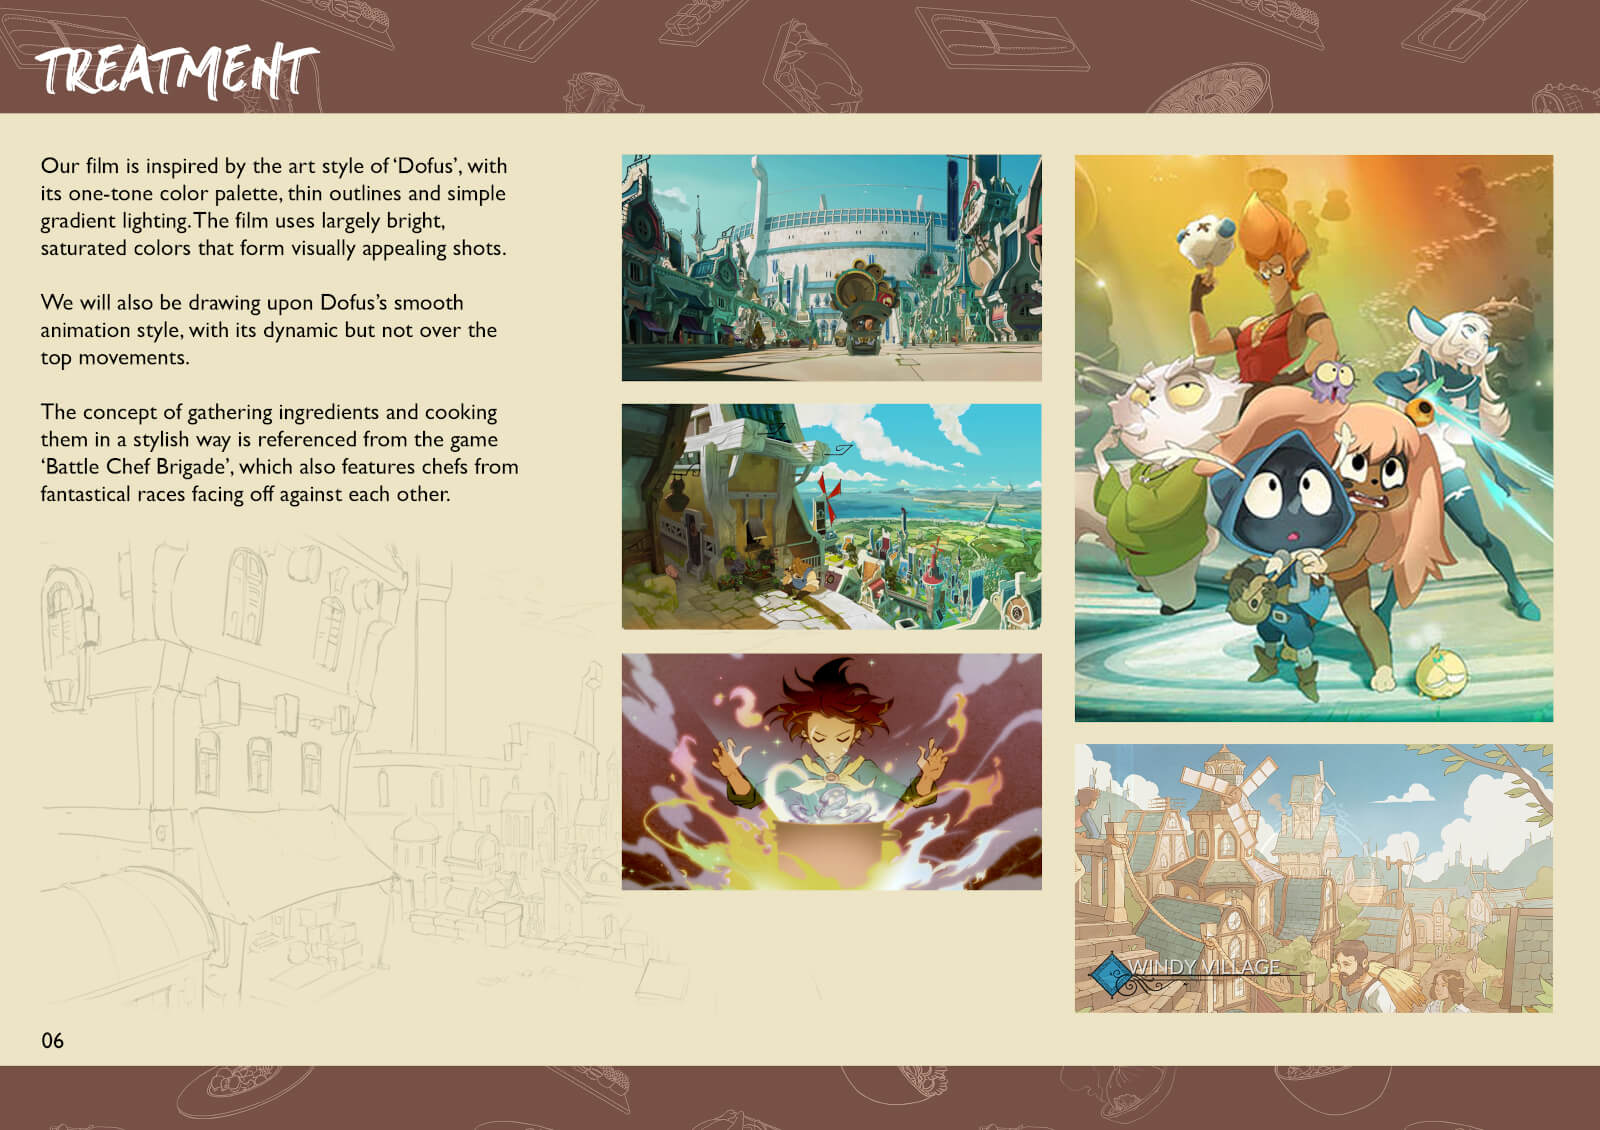 Images from the film Dofus